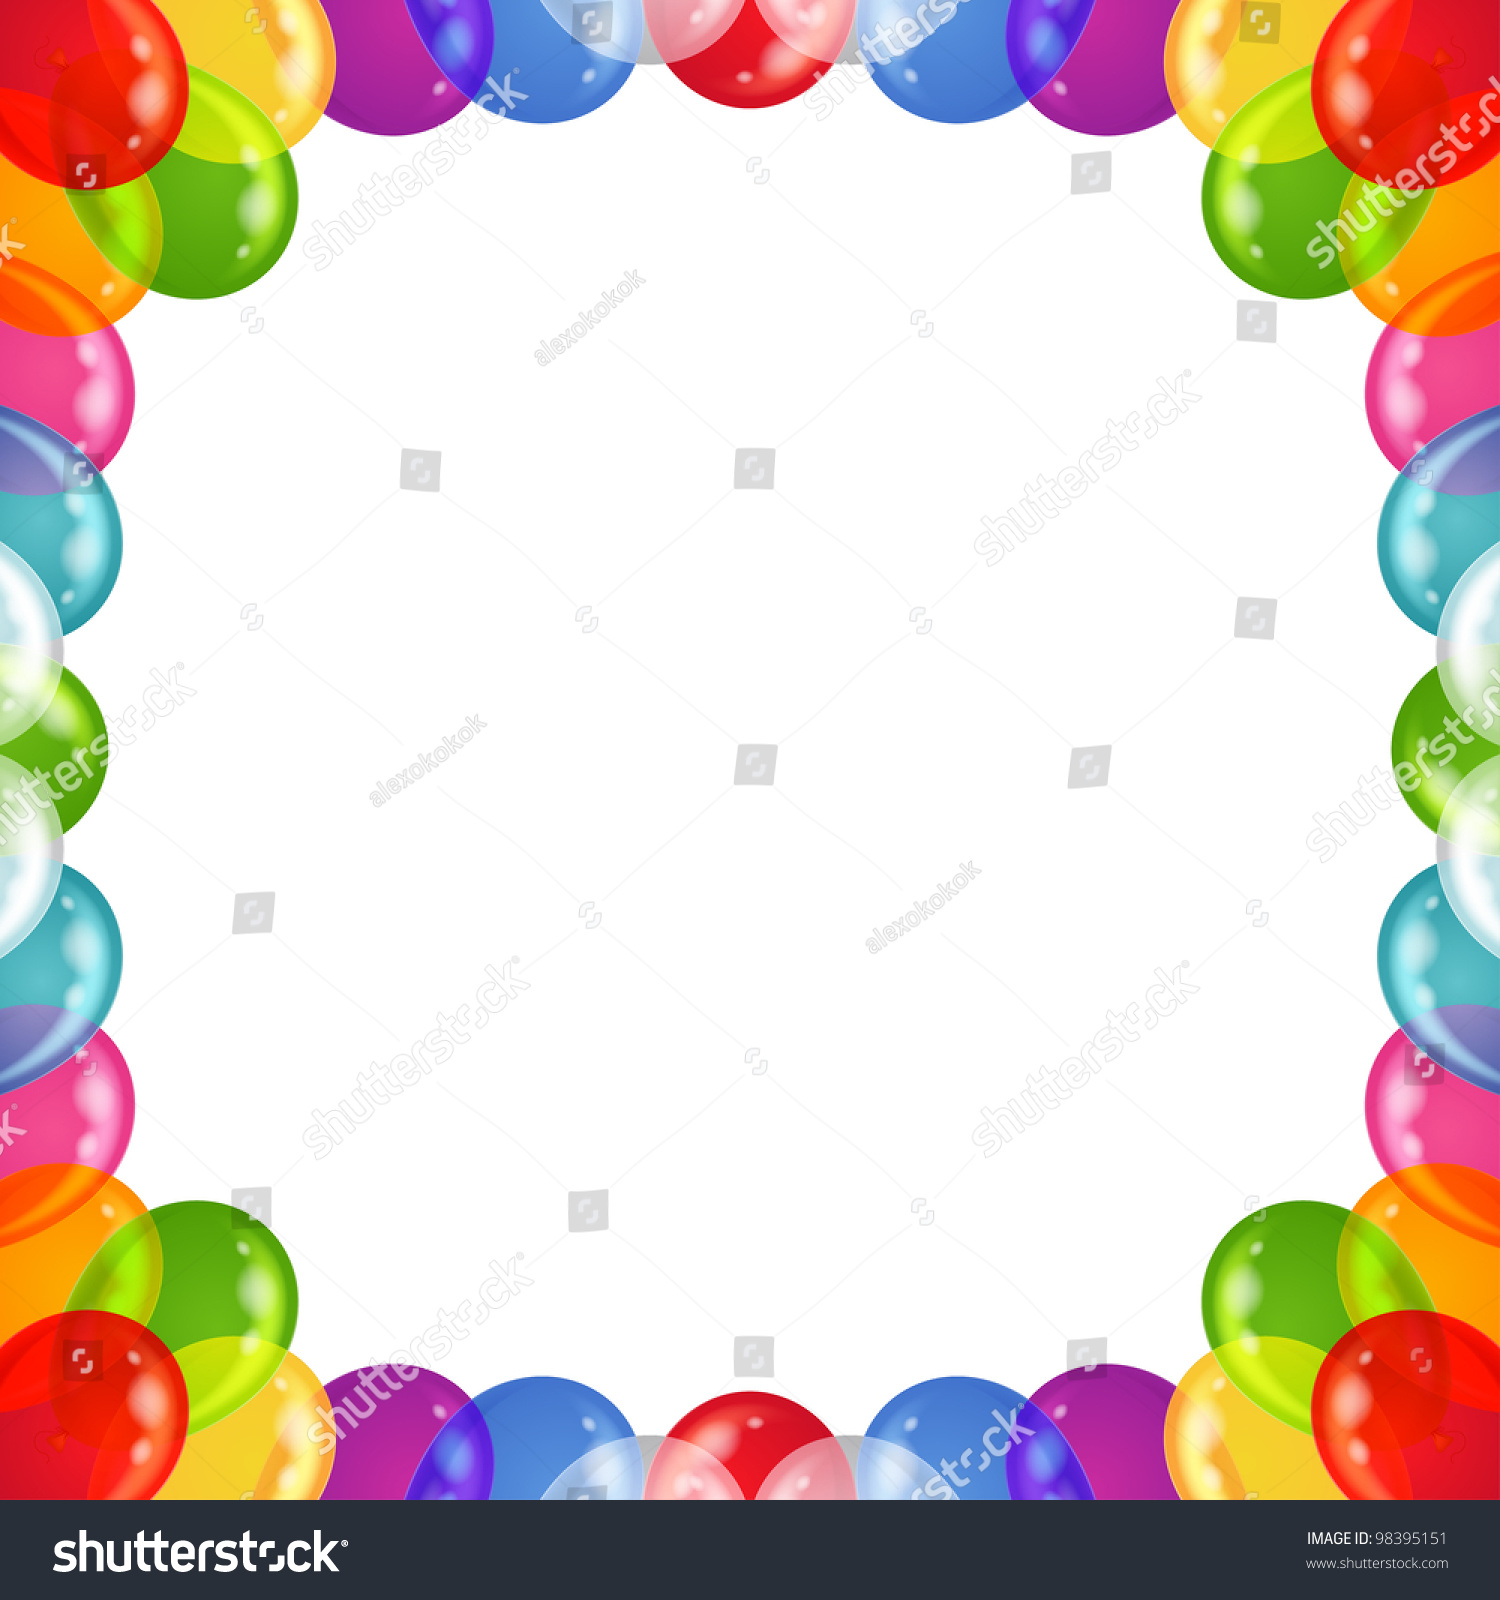 balloons frame of various colors beautiful background isolated eps10 contains transparencies